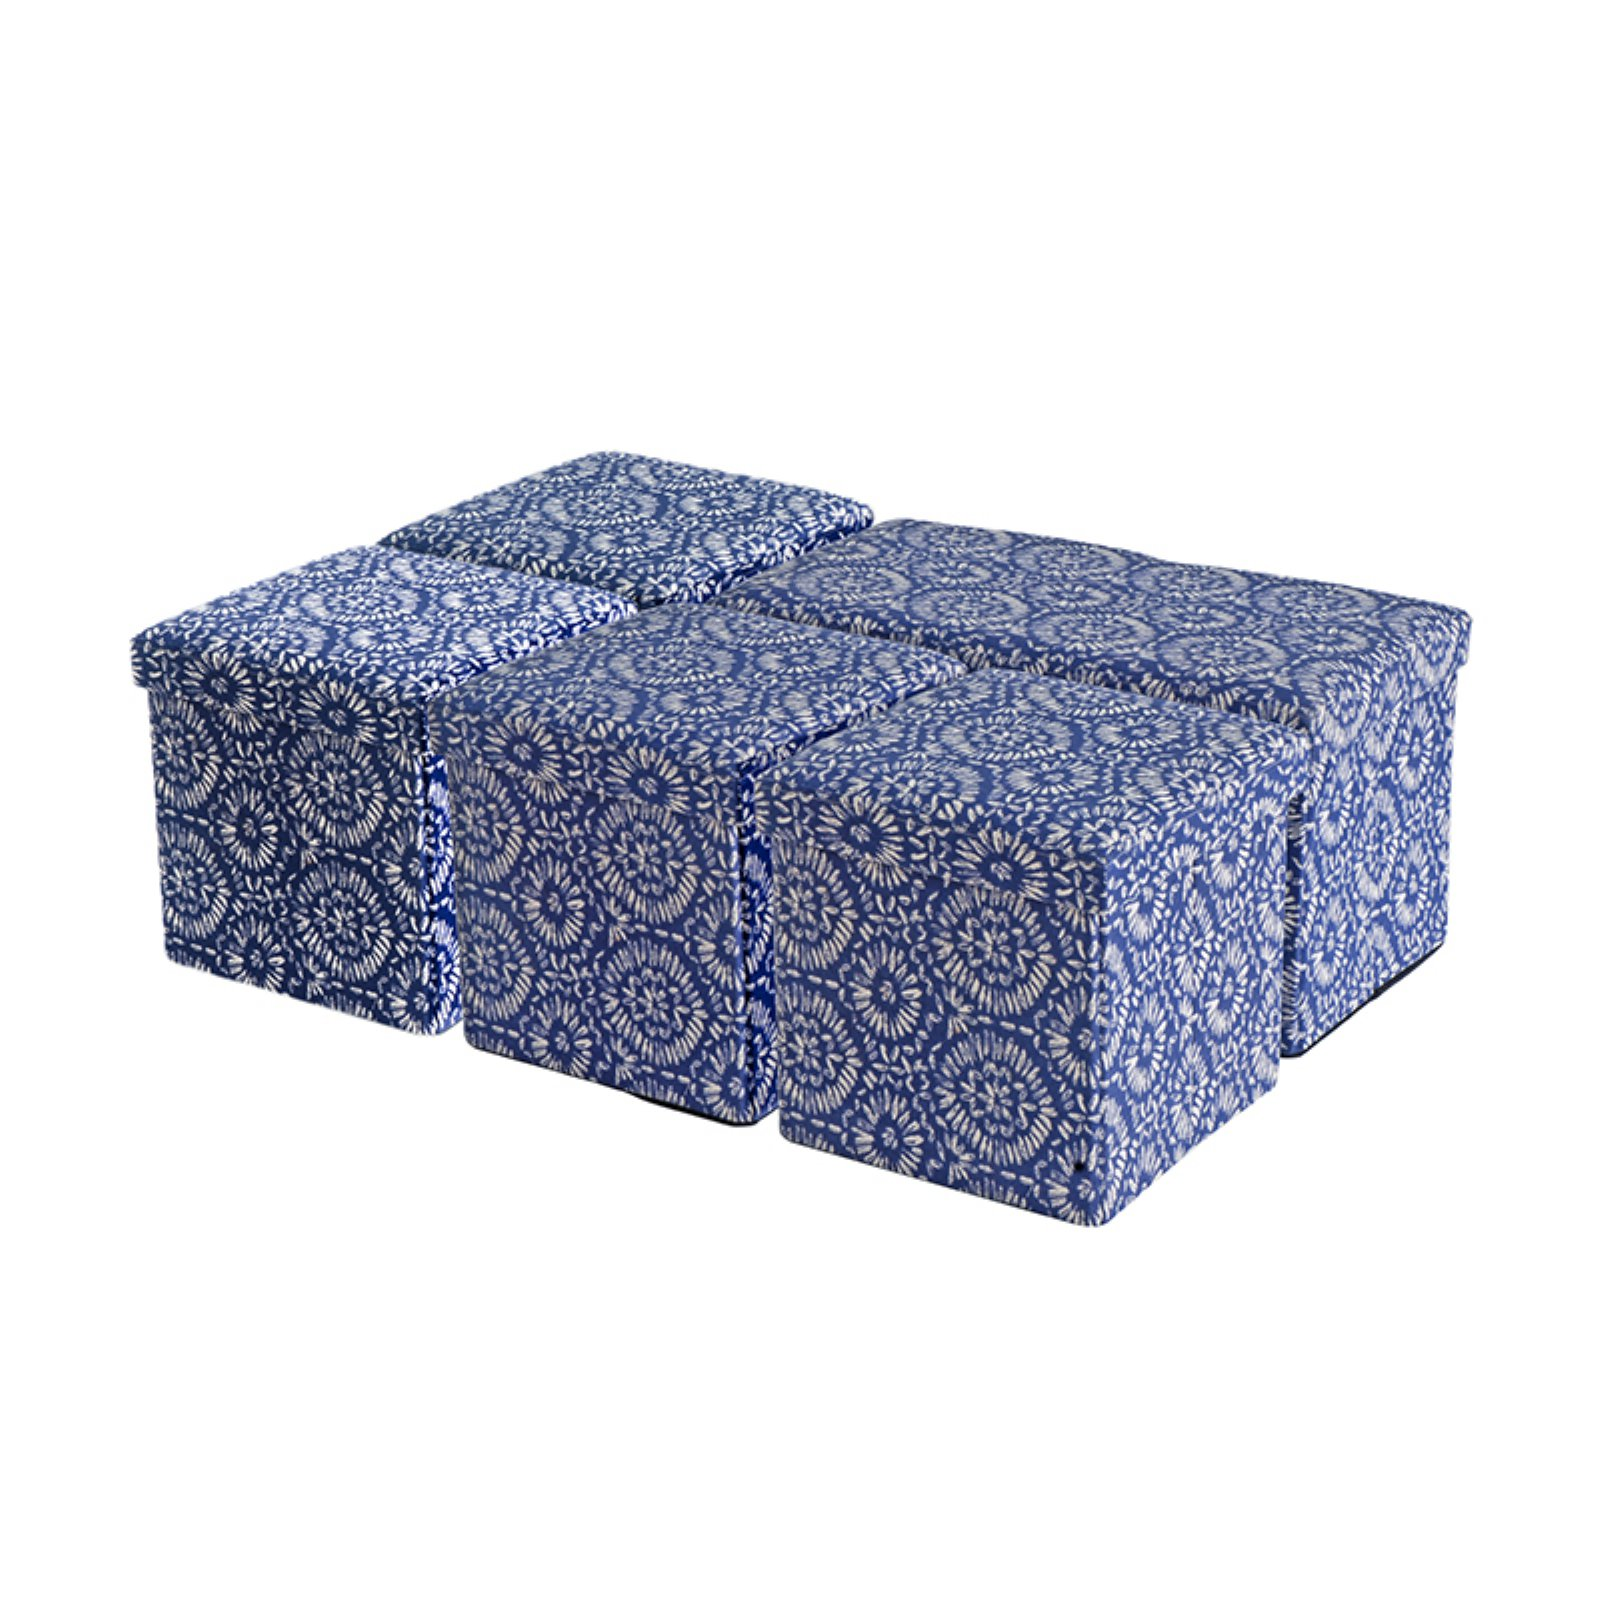 Creative Living 5 Piece Folding Storage Bench and Ottoman Set - Blue